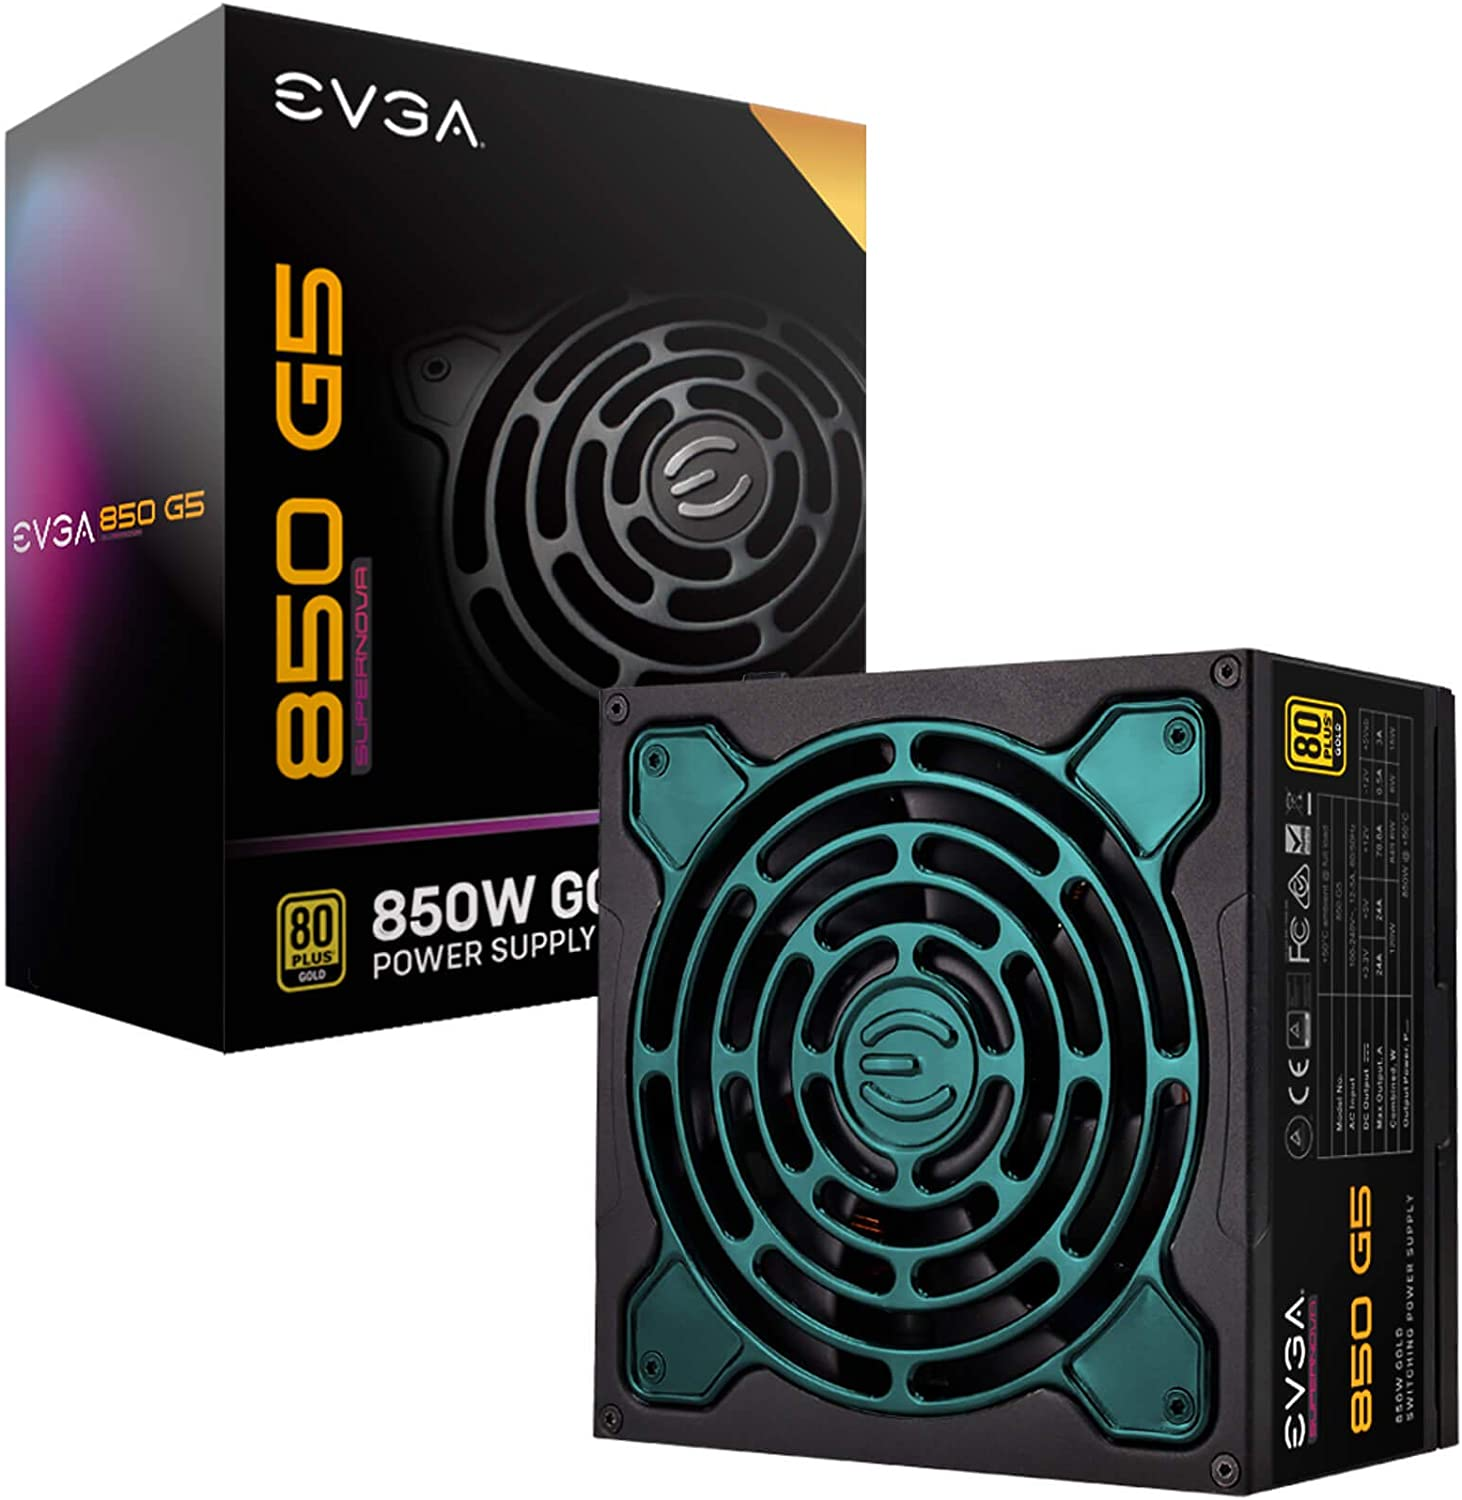 EVGA Supernova 850 G5, 80 Plus Gold 850W, Fully Modular, ECO Mode with Fdb Fan, 10 Year Warranty, Compact 150mm Size, Power Supply 220-G5-0850-X1